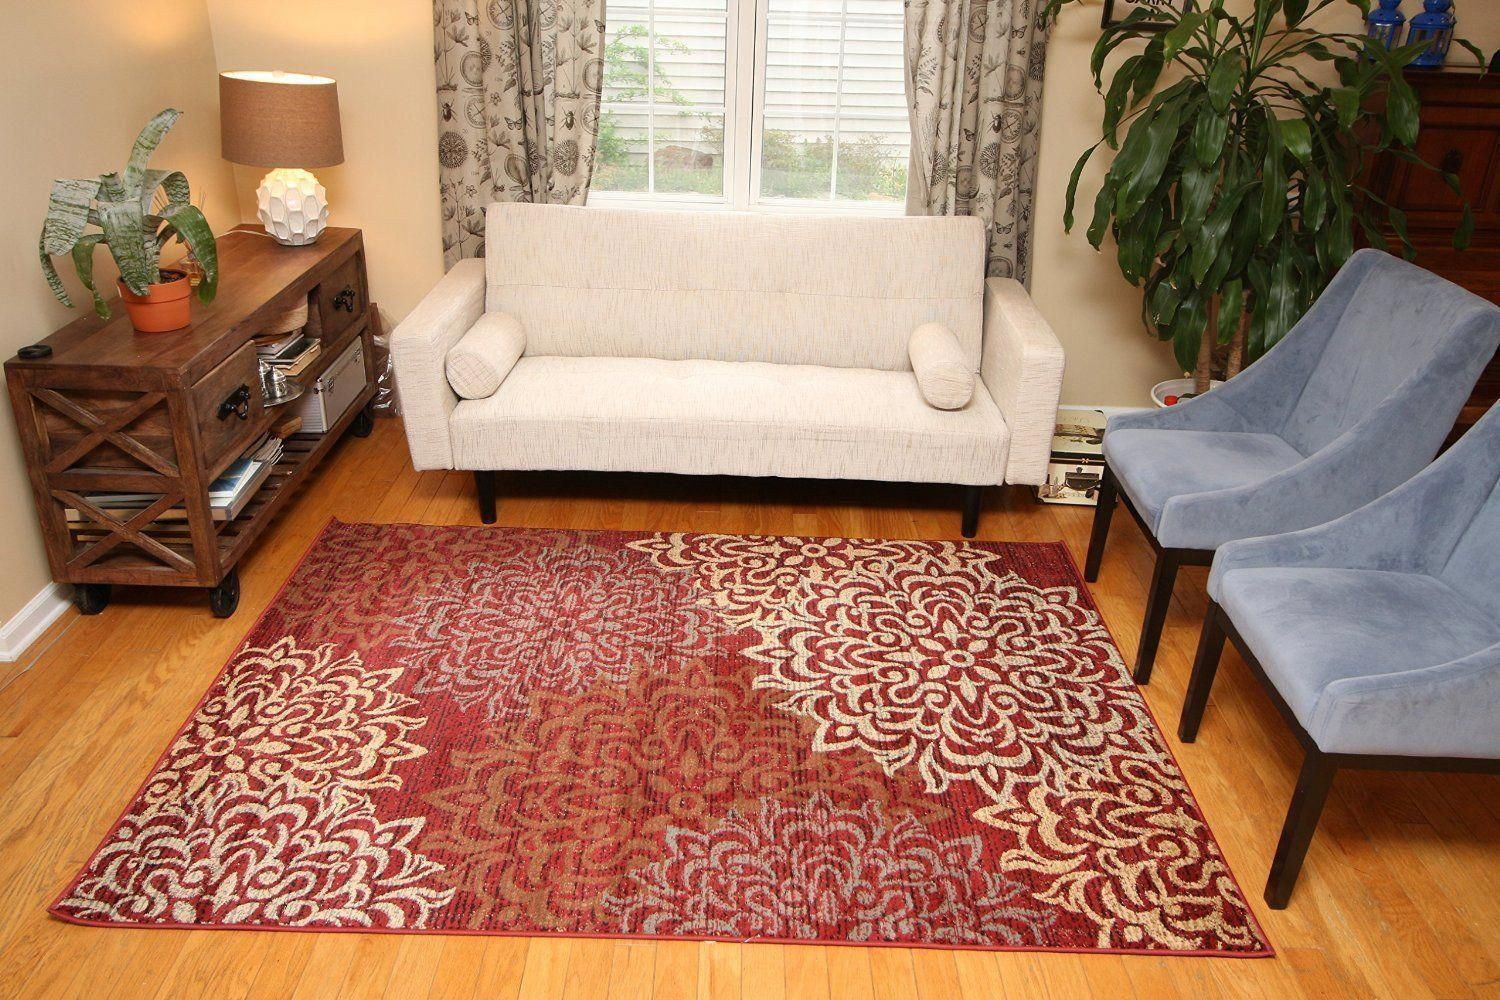 Want to make your house feel like new? Would like to